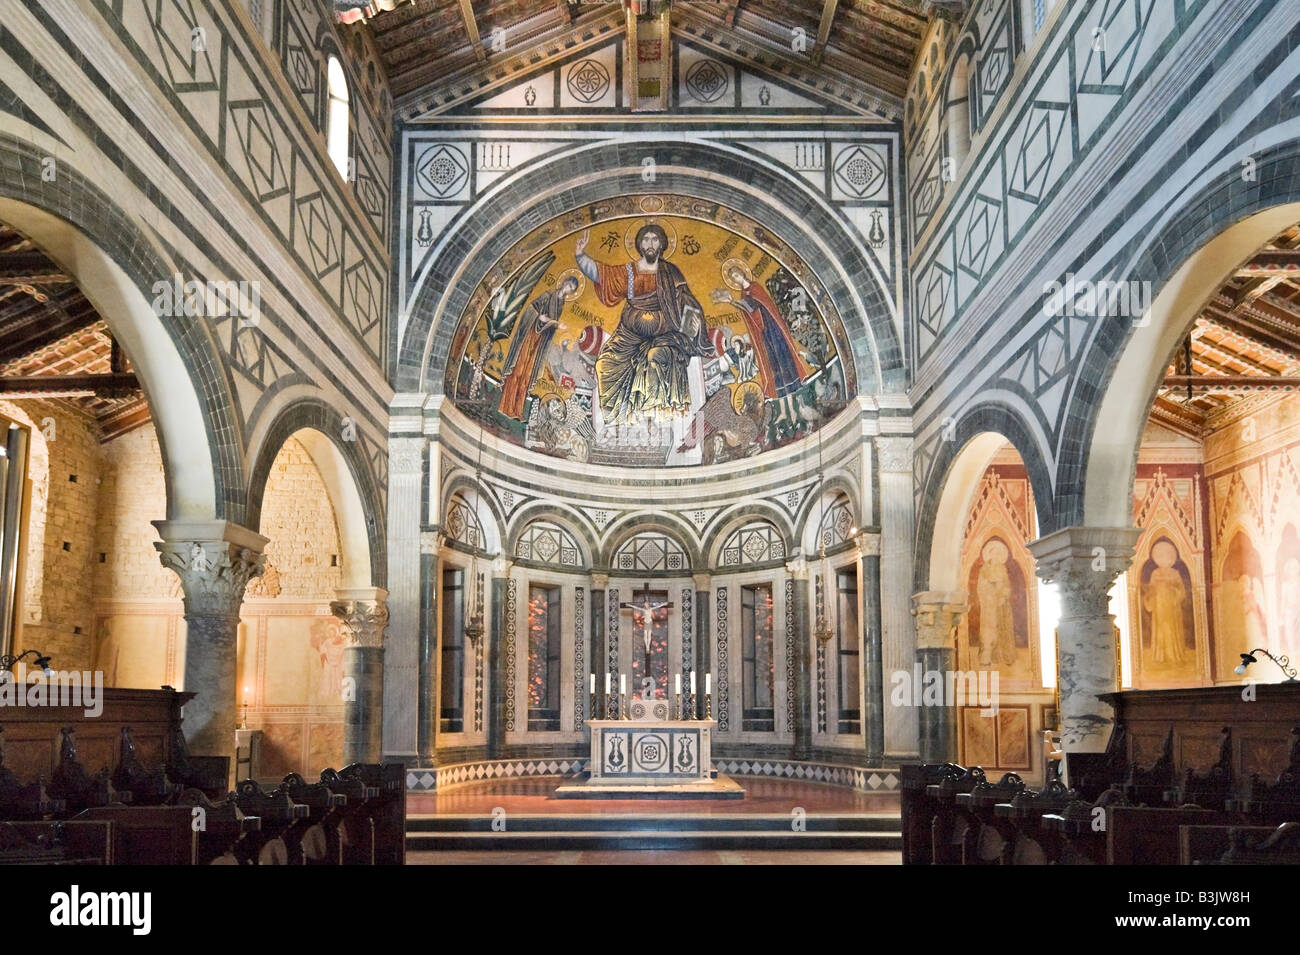 Interior of the church of san miniato al monte showing the for Images of interior